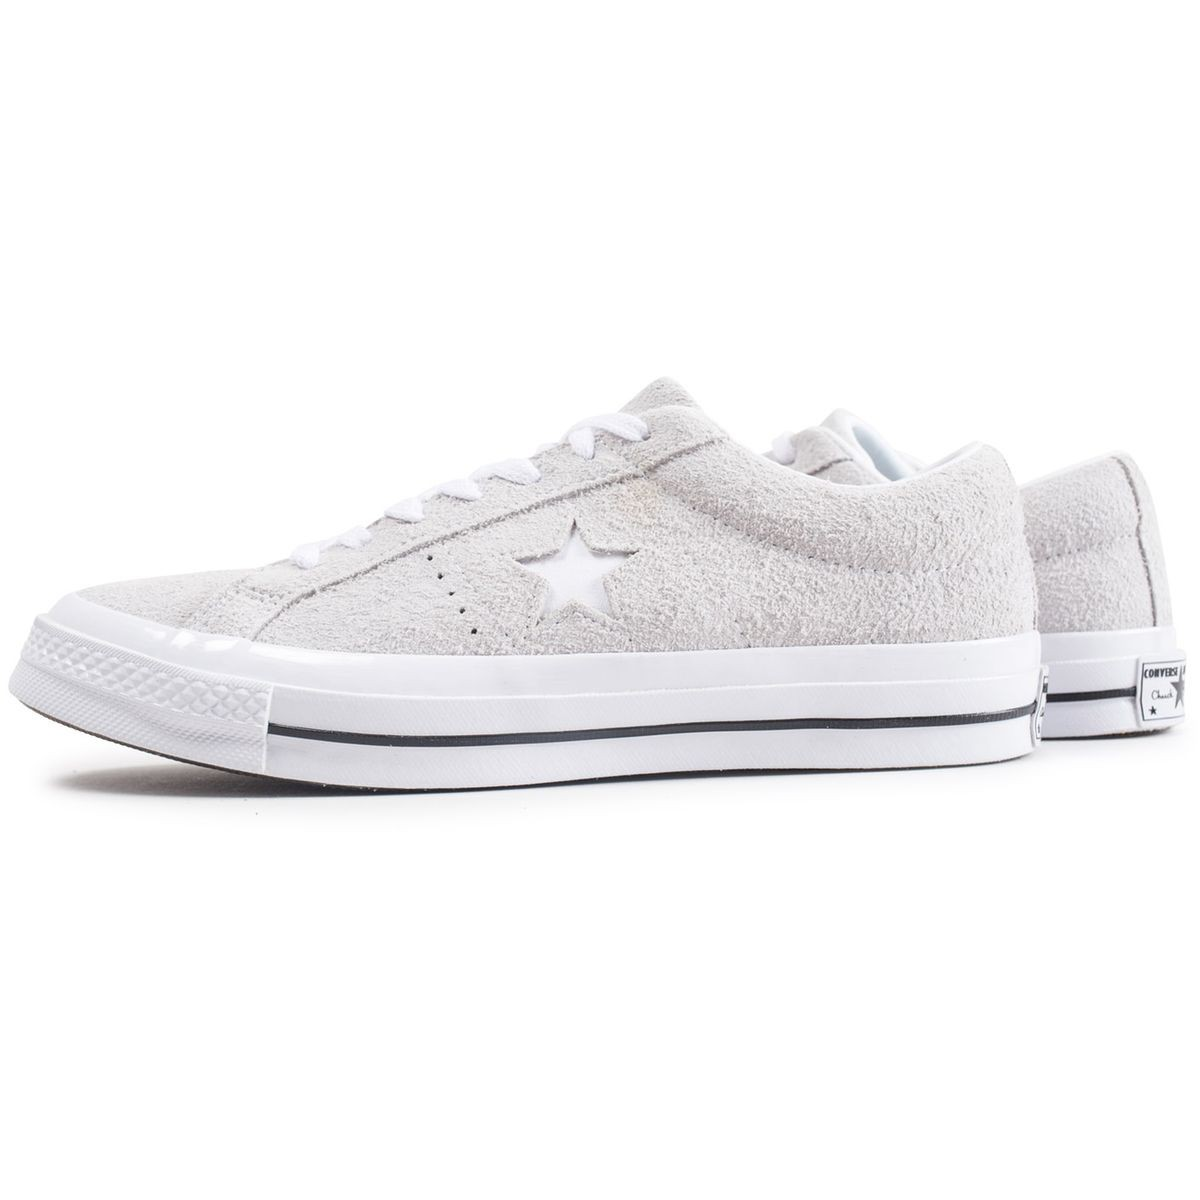 converse homme basse blanche 42